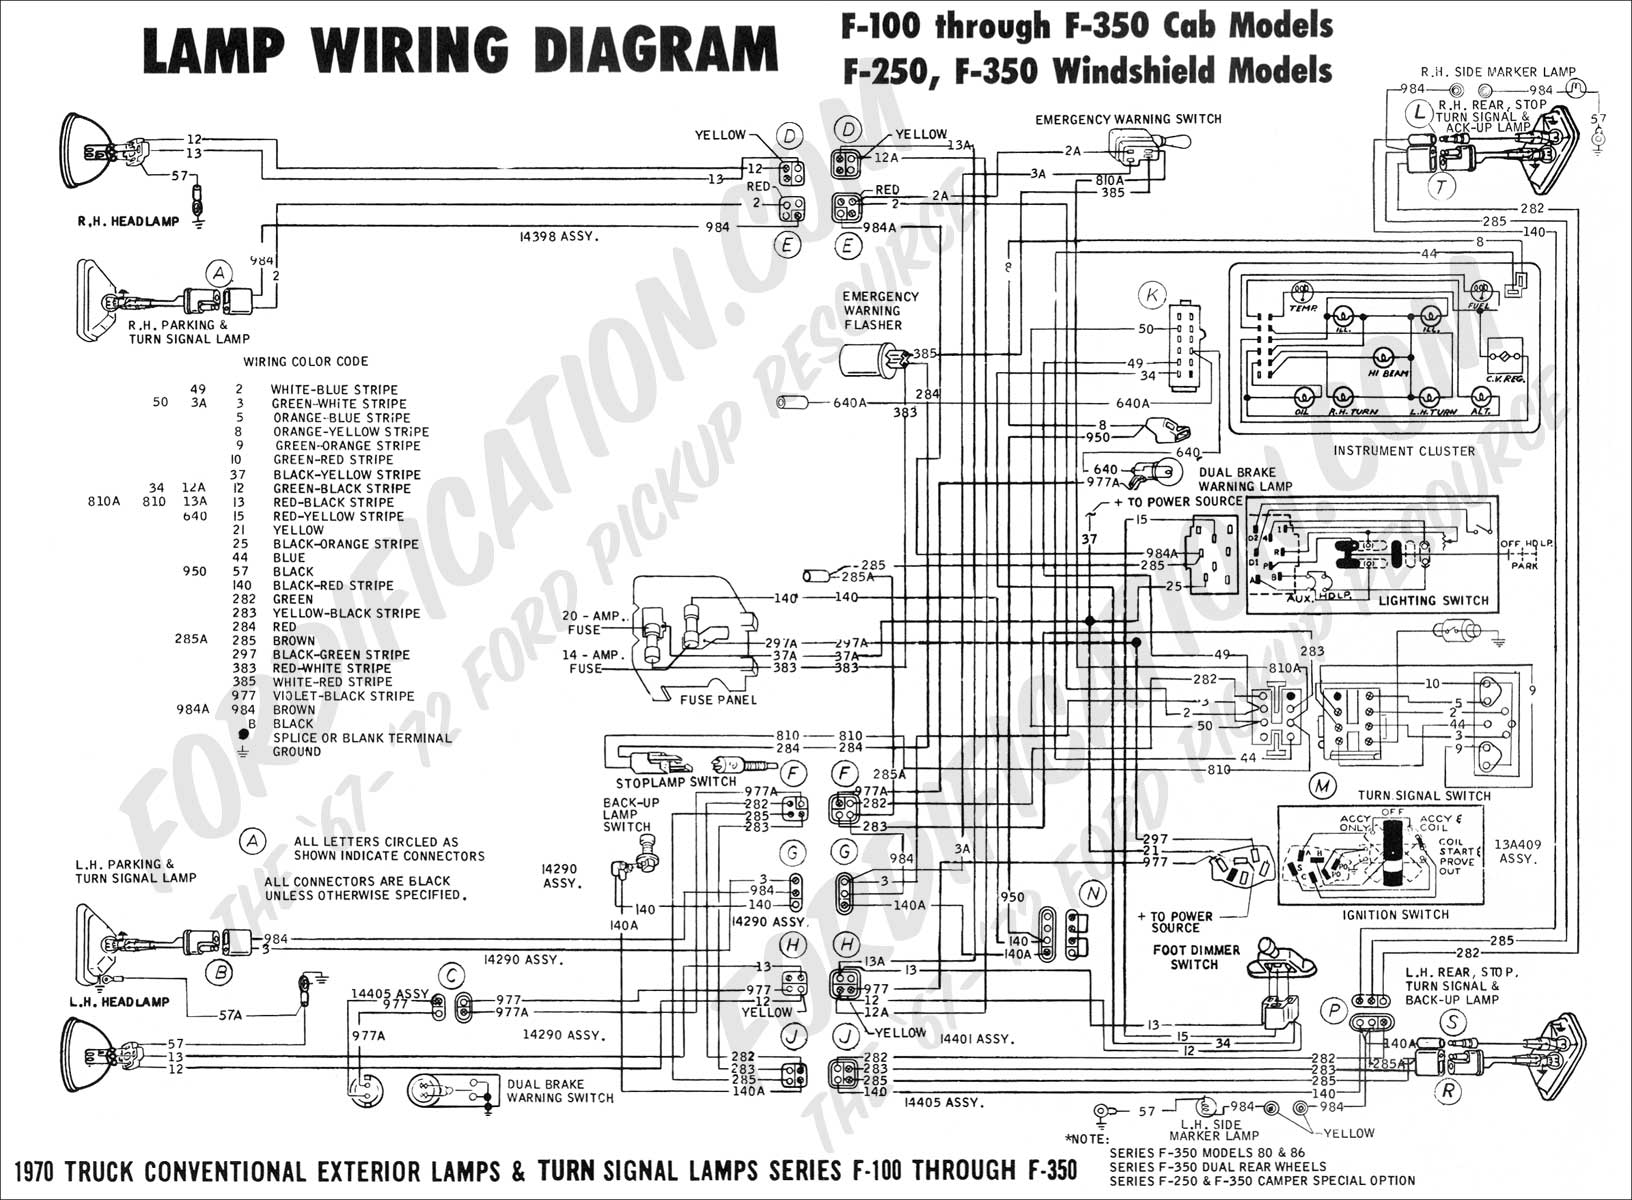 2016 Ford Explorer Wiring Schematic : 35 Wiring Diagram